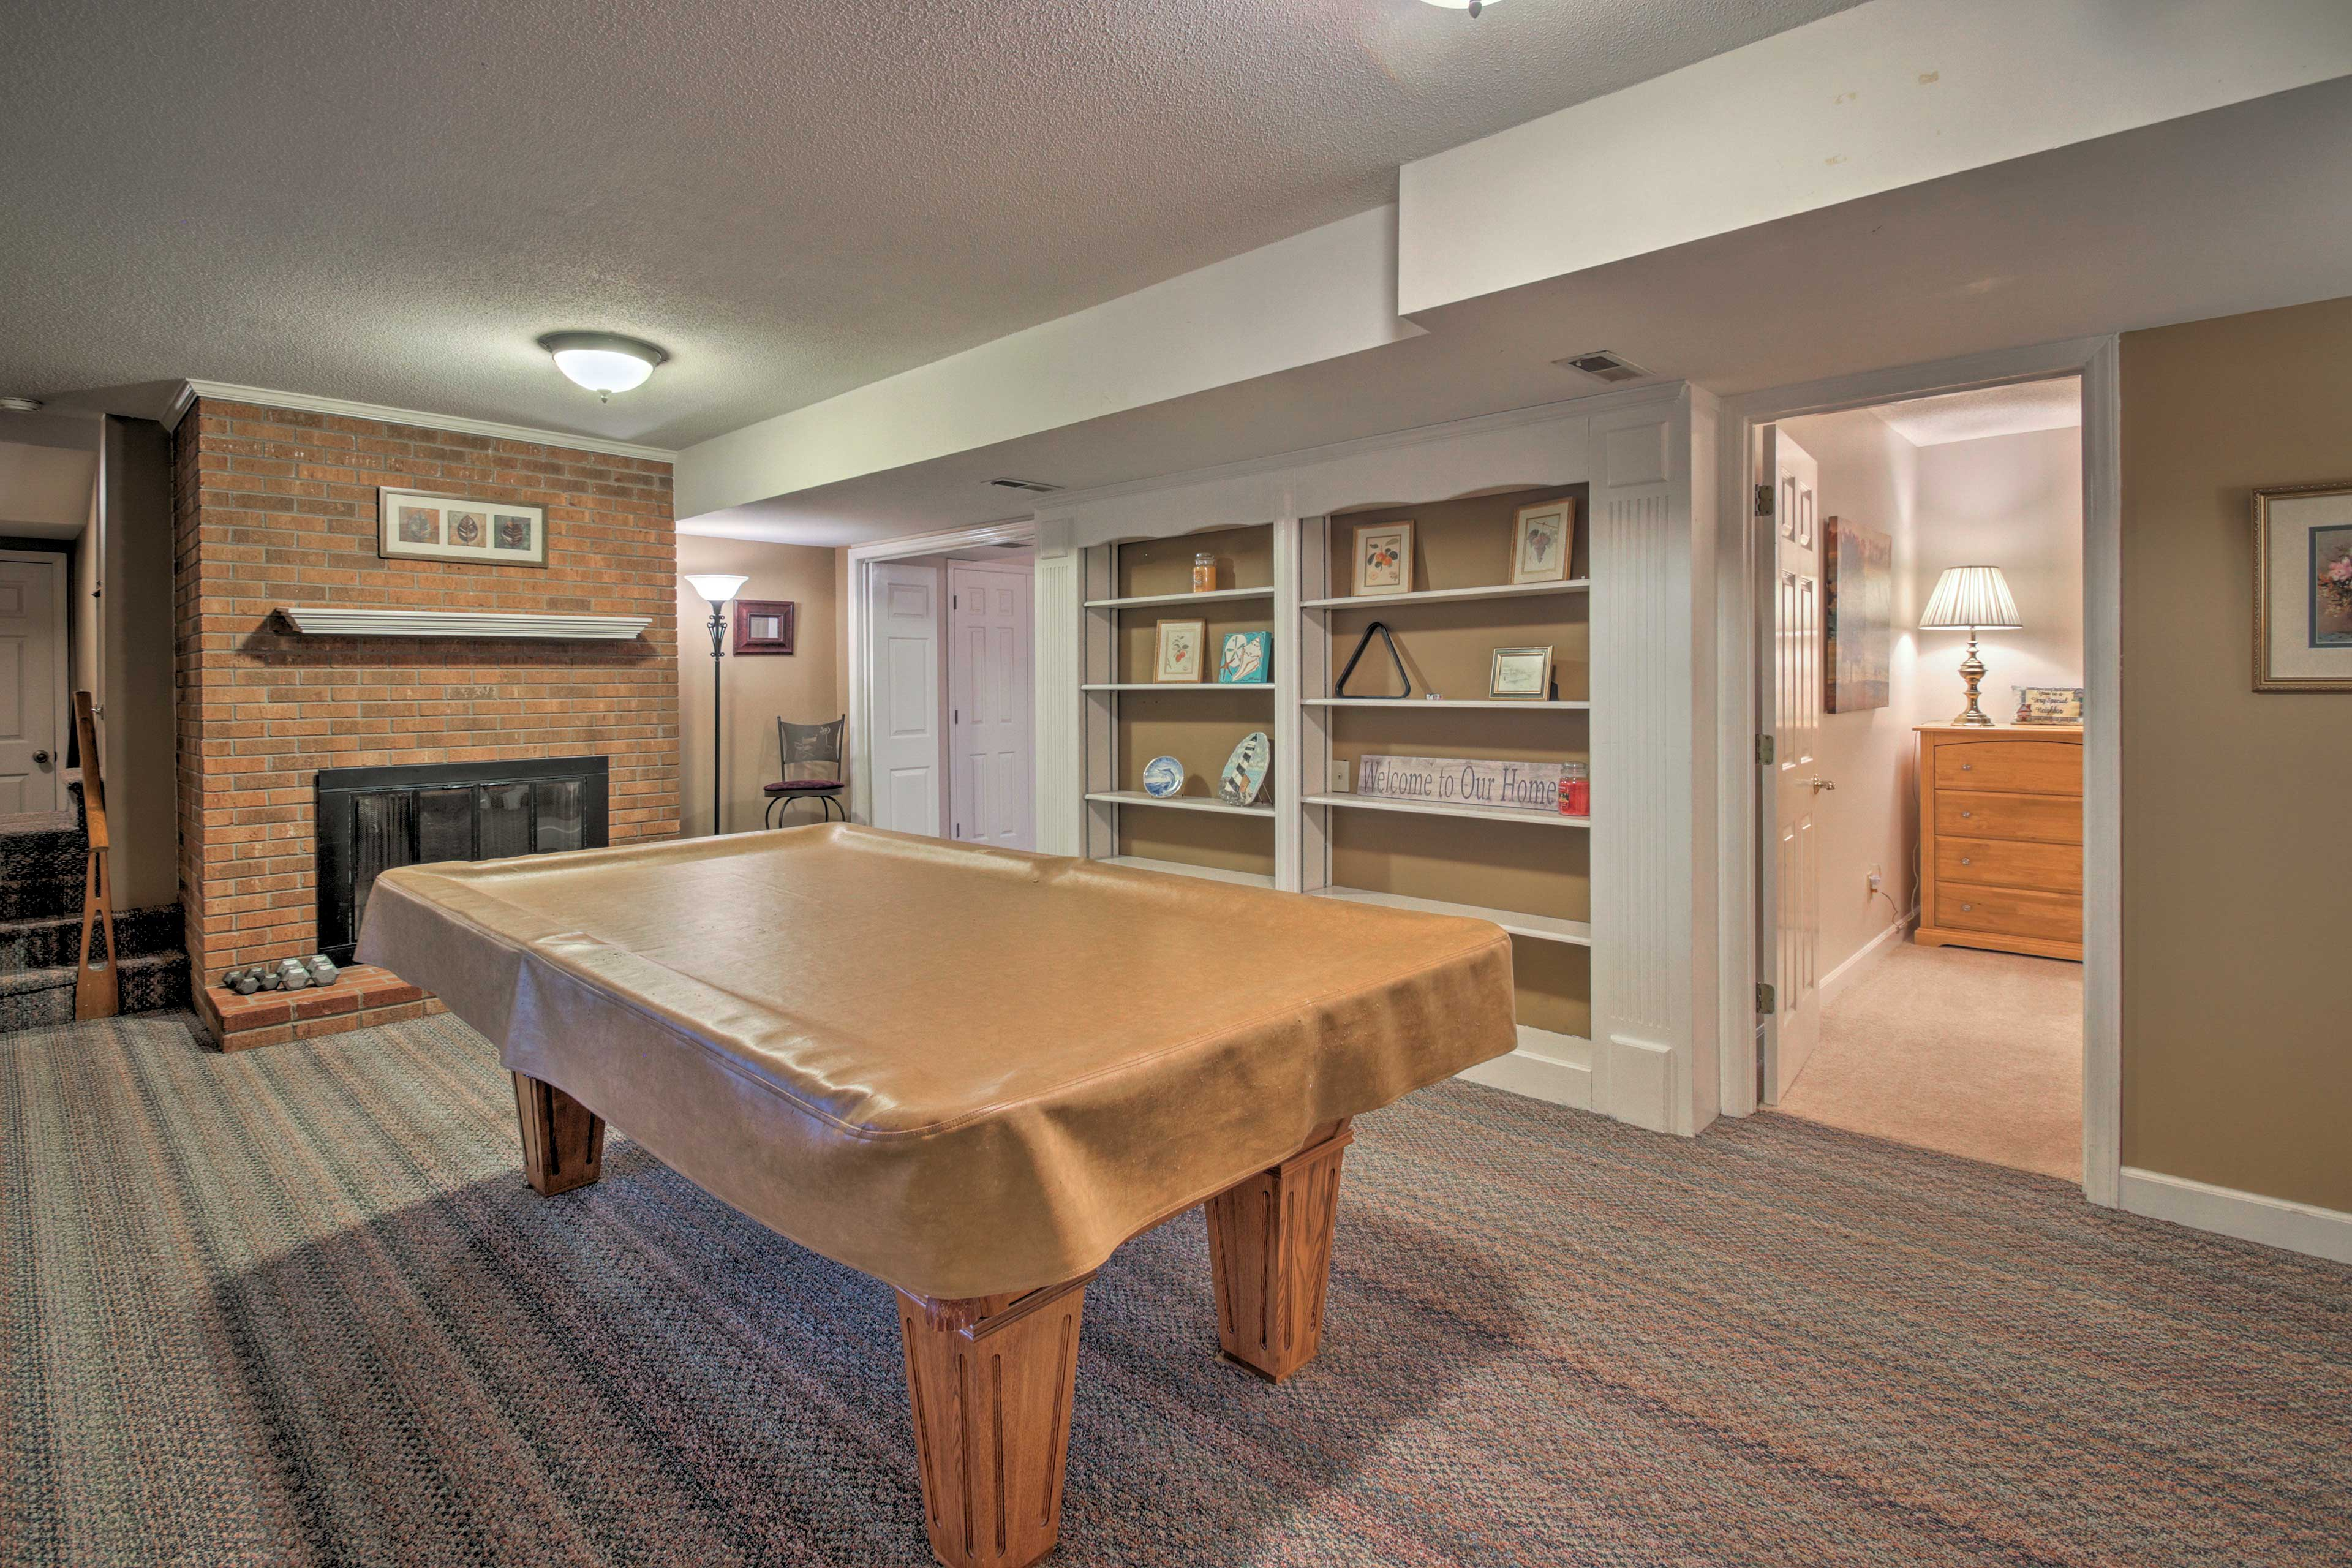 There's even a ping-pong table provided in the garage.